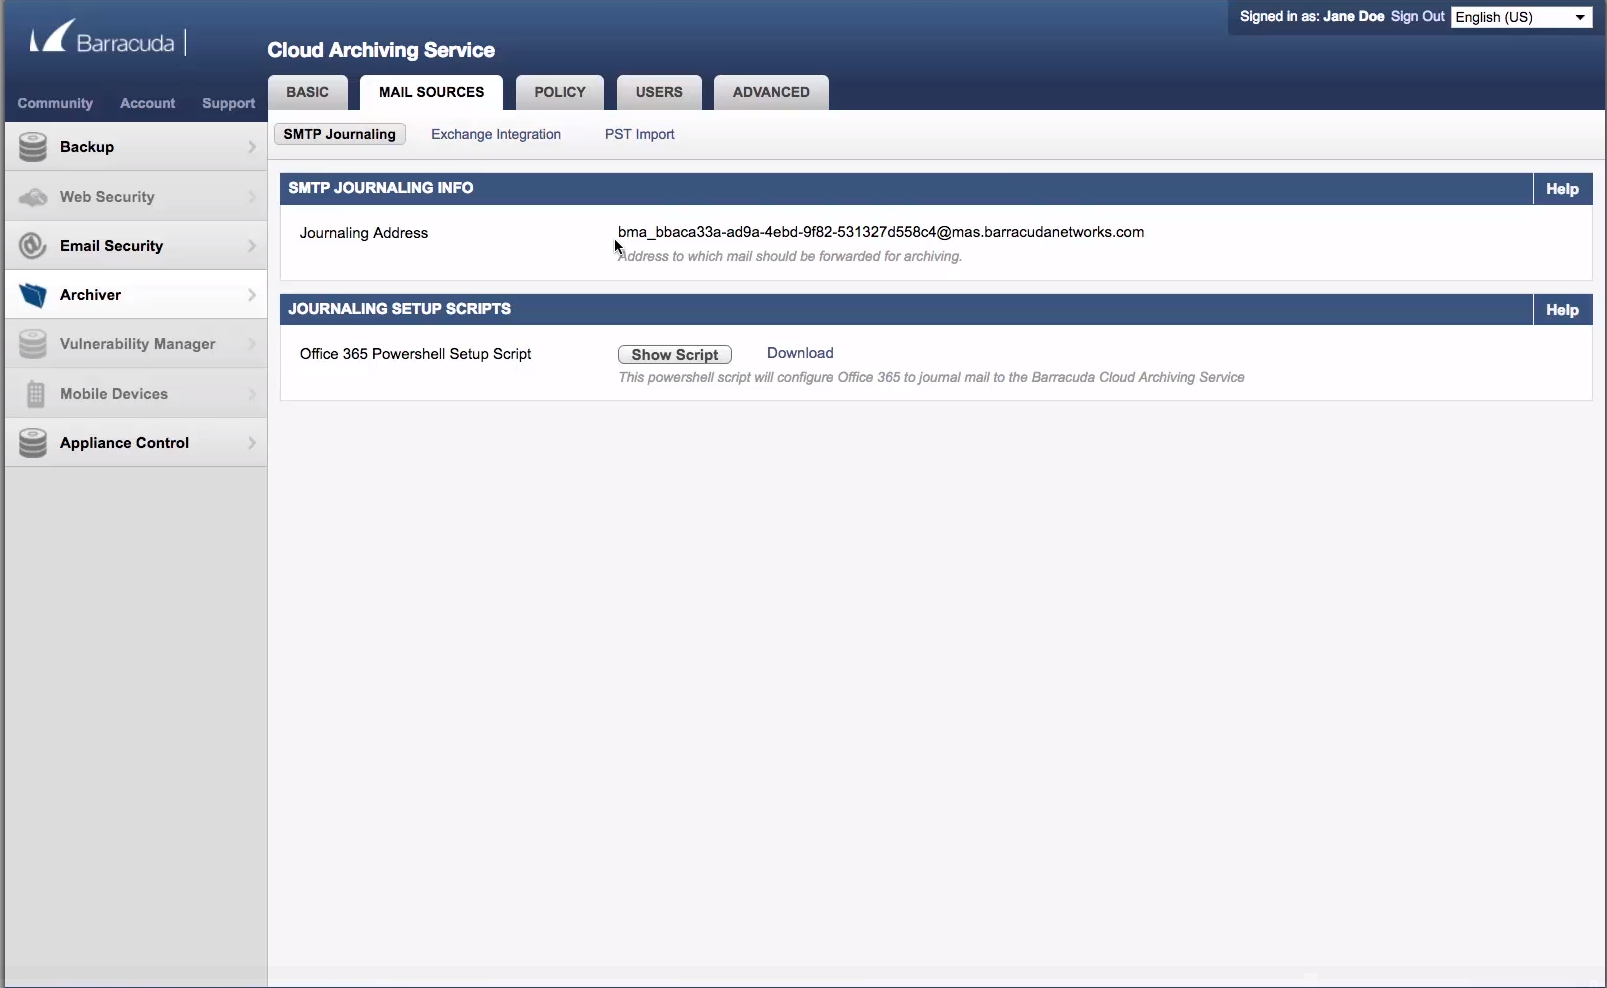 Display of journal address for Barracuda Essentials archiving